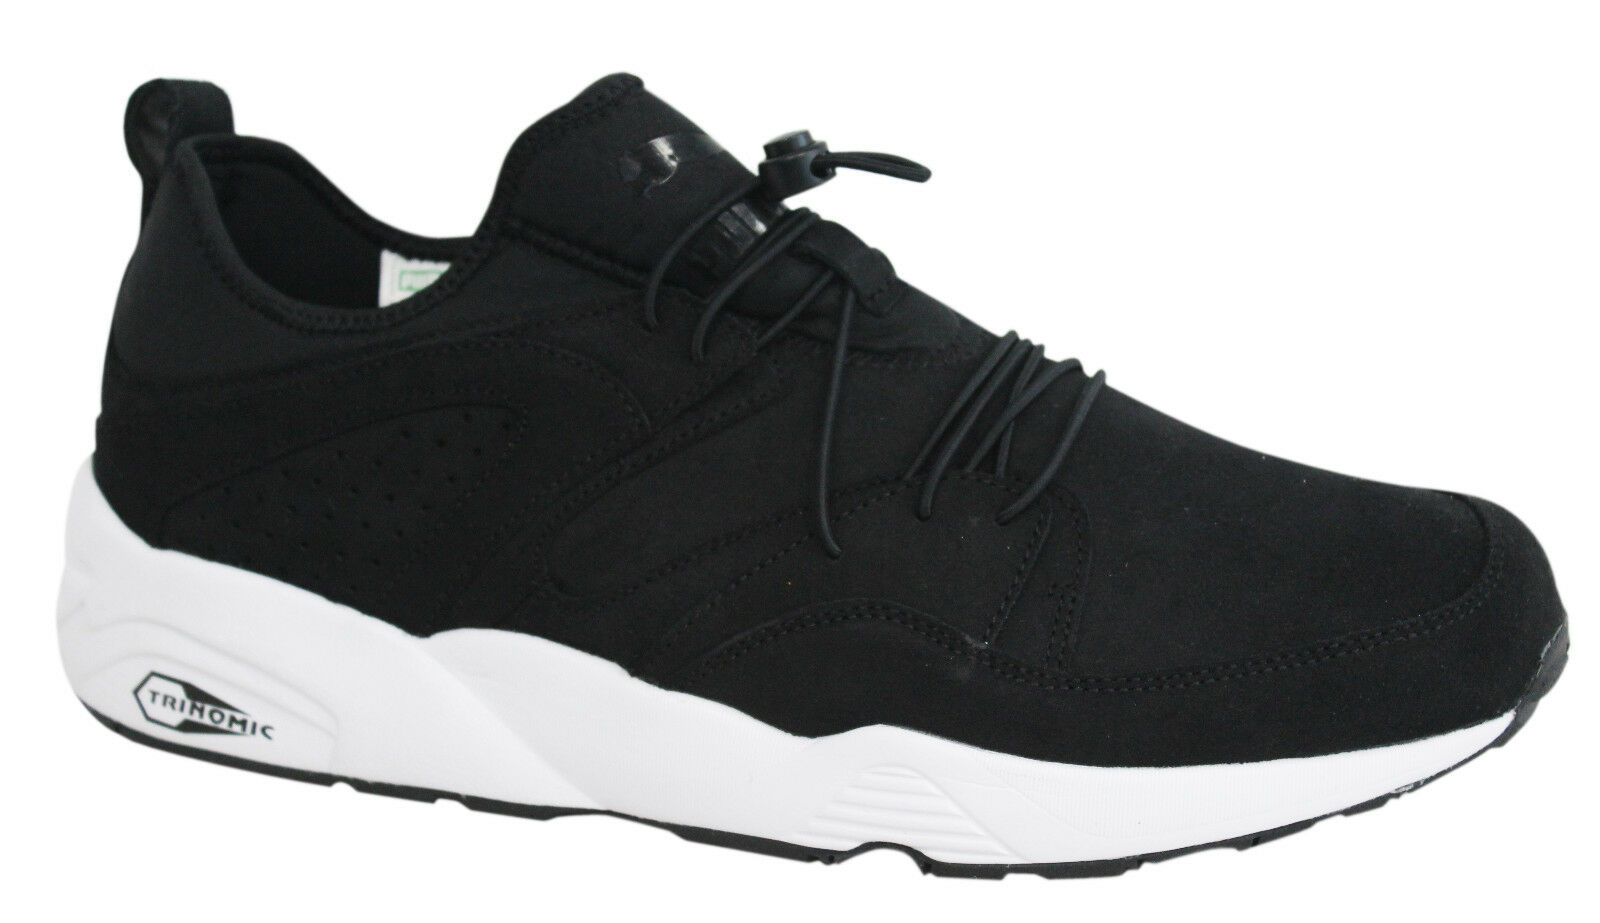 Puma Trinomic BOG Blaze of Glory Soft Homme Noir Trainers Chaussures 363541 03 P